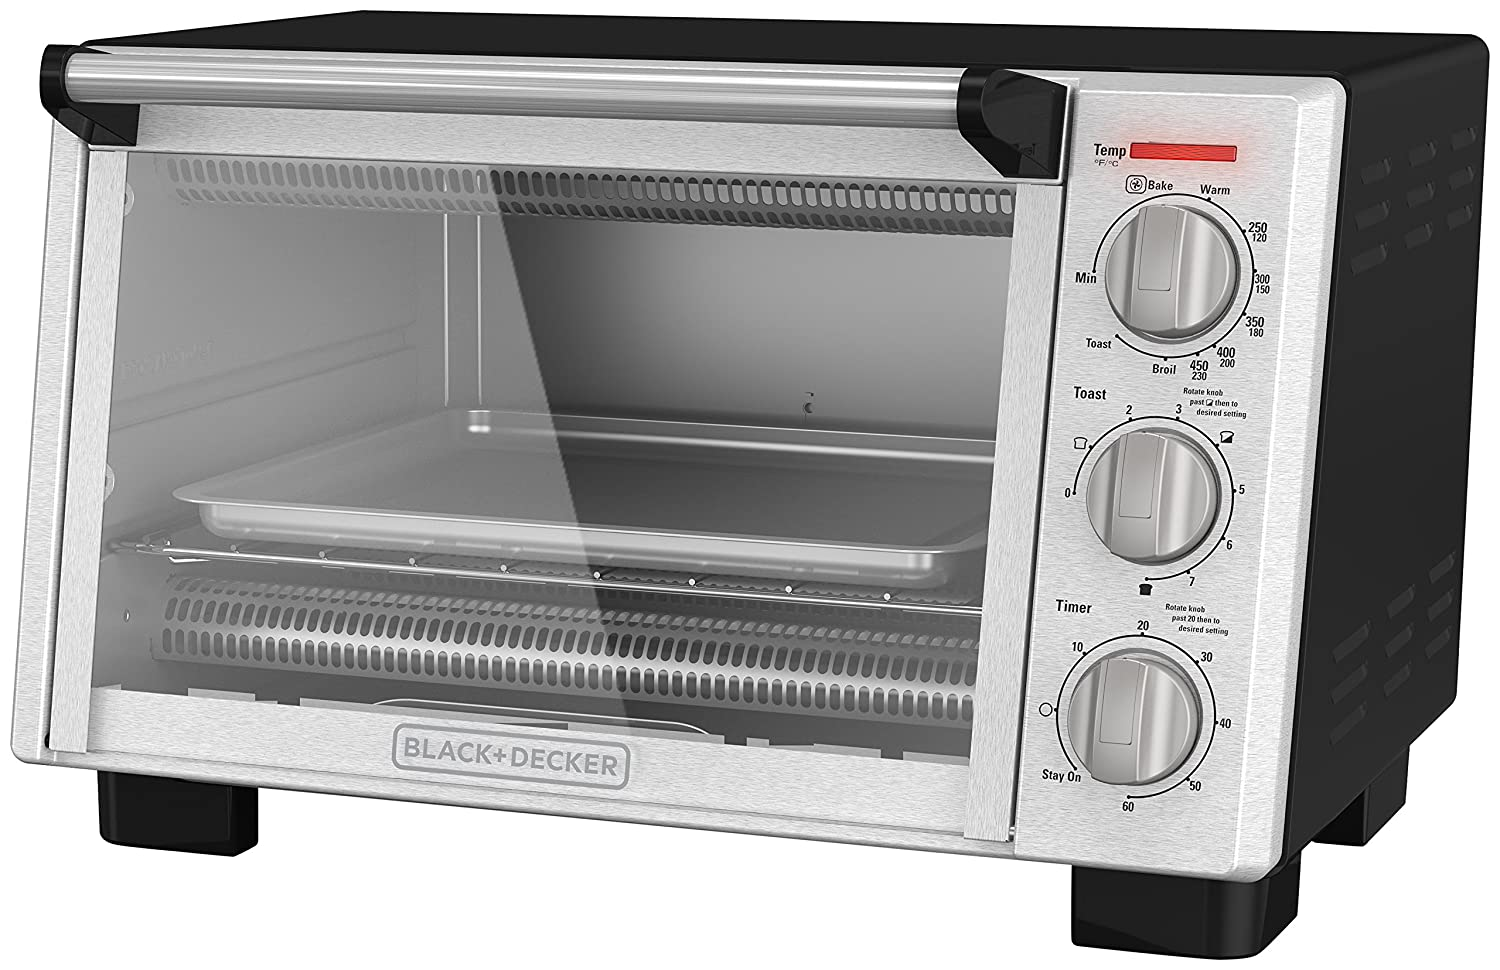 BLACK+DECKER 6-Slice Convection Countertop Toaster Oven, Stainless Steel/Black, TO2055S